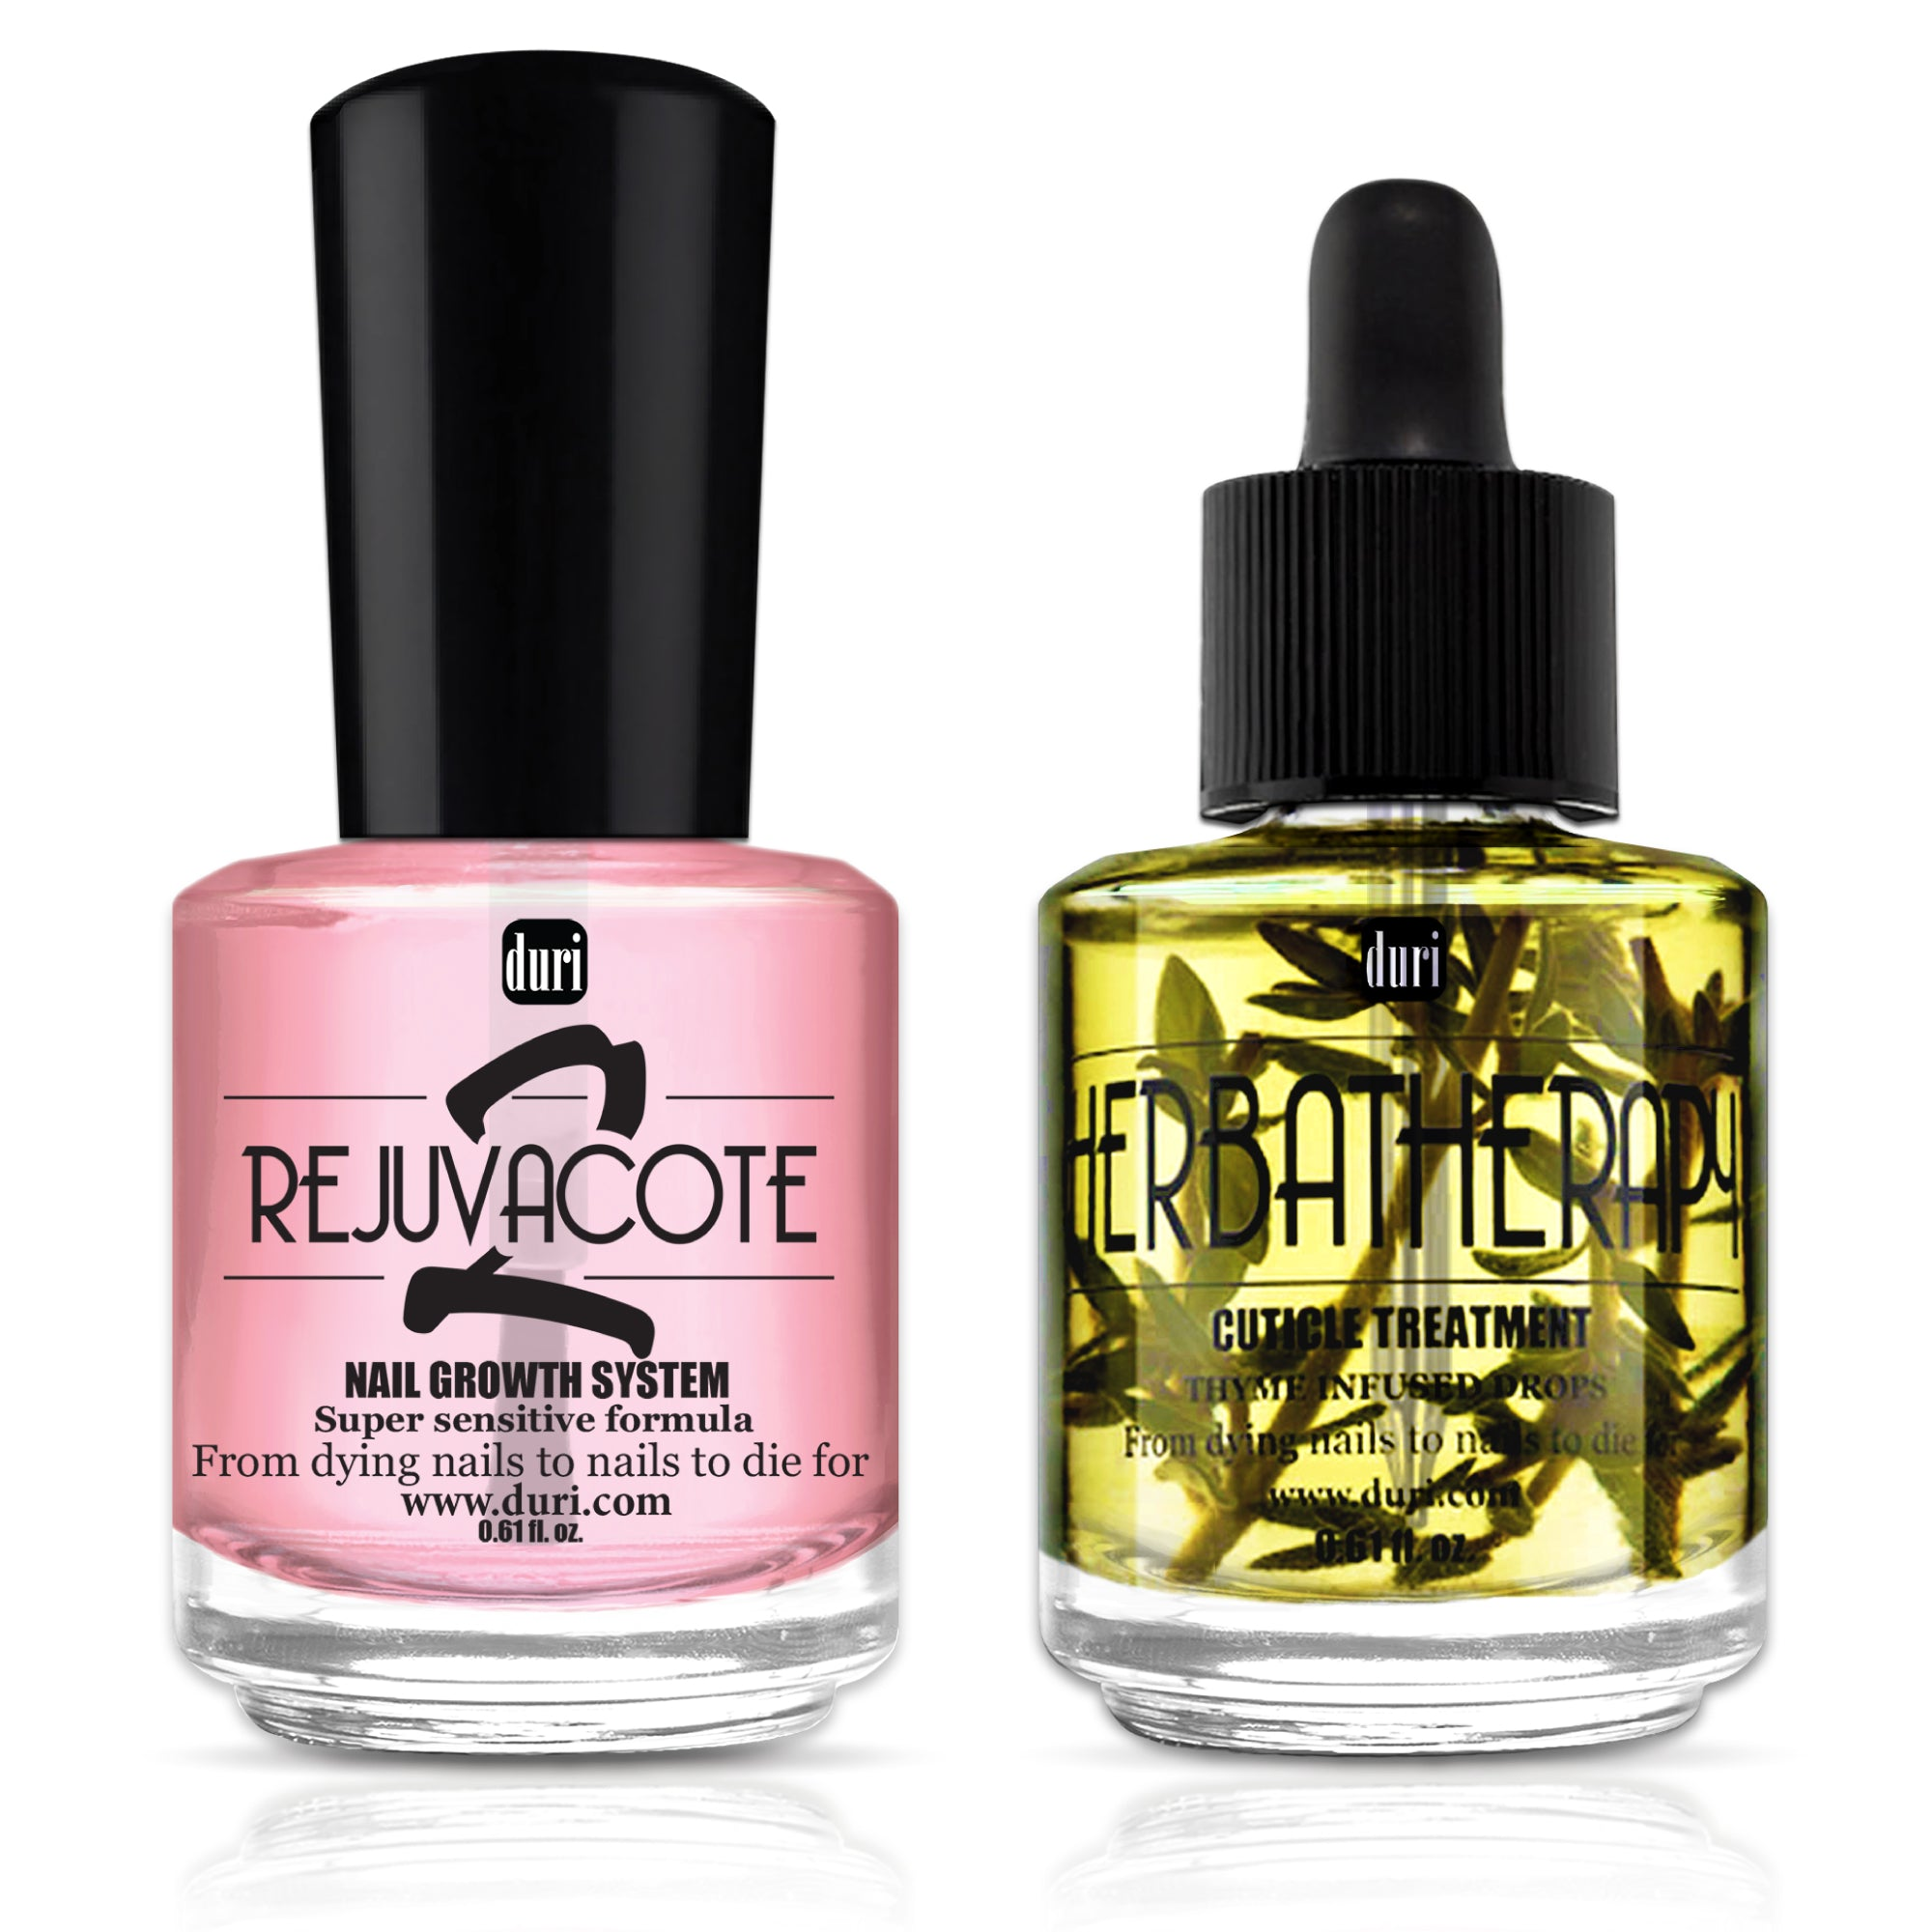 Rejuvacote 2 Nail Growth Base & Top Coat Nail Polish System + Herbatherapy Cuticle Treatment Drops